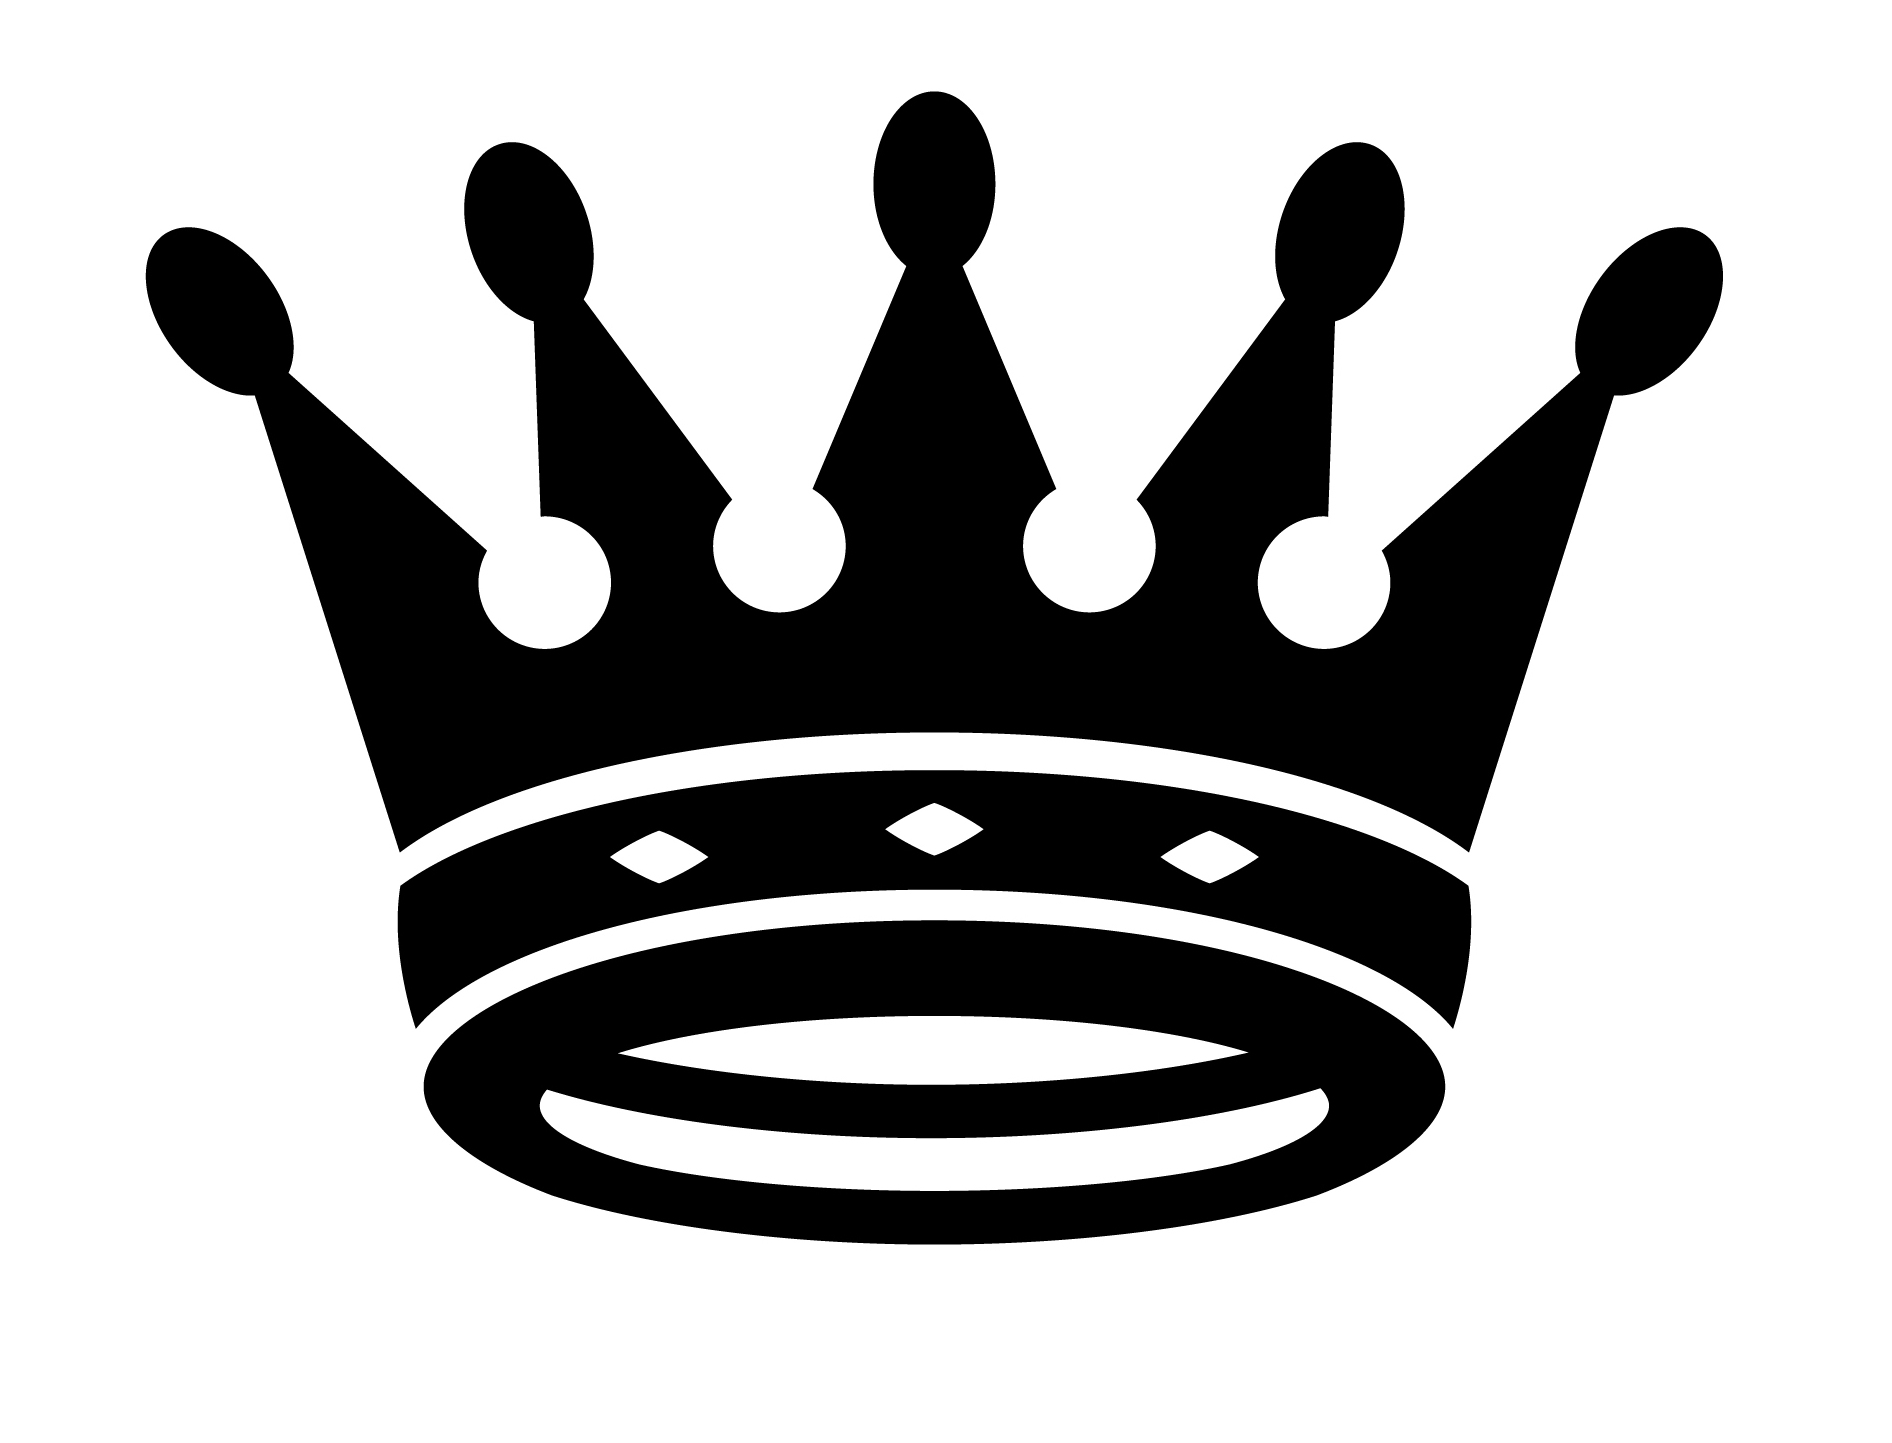 Crown king and queen crown clip art king and queen crown silhouette